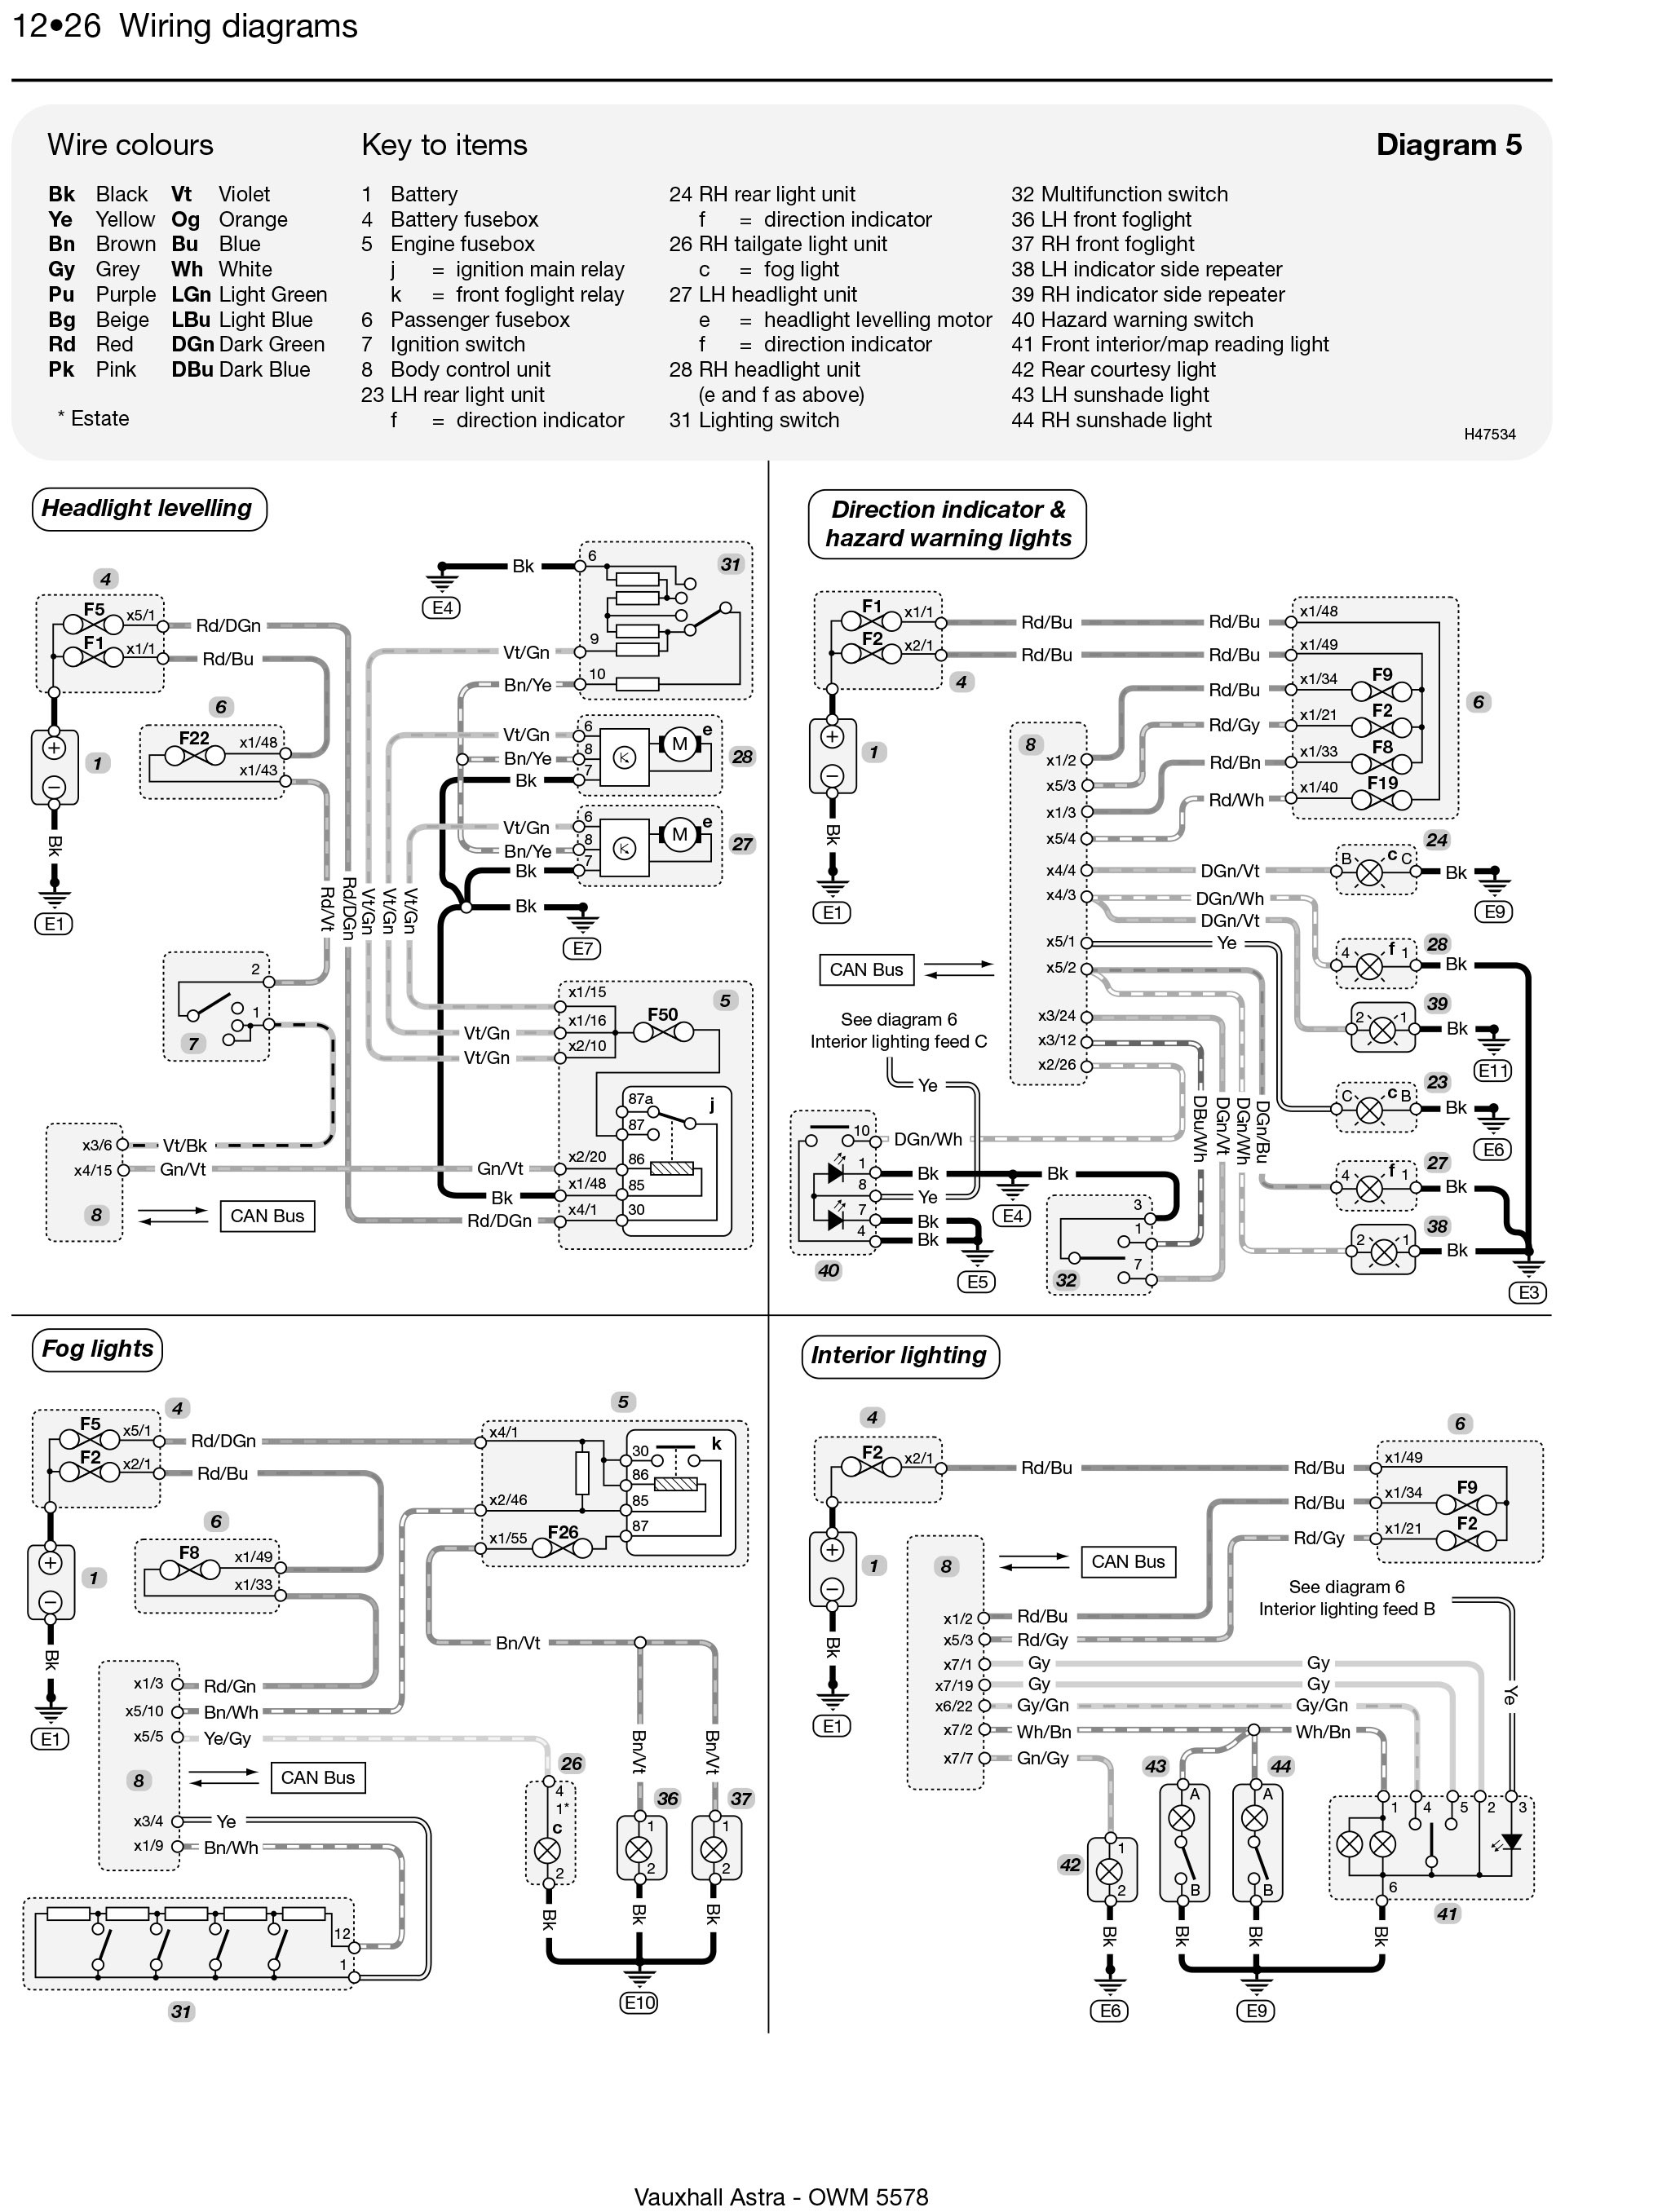 Opel Engine Diagram | Wiring Schematic Diagram on vintage opel, buick opel, 70s opel, ford opel,